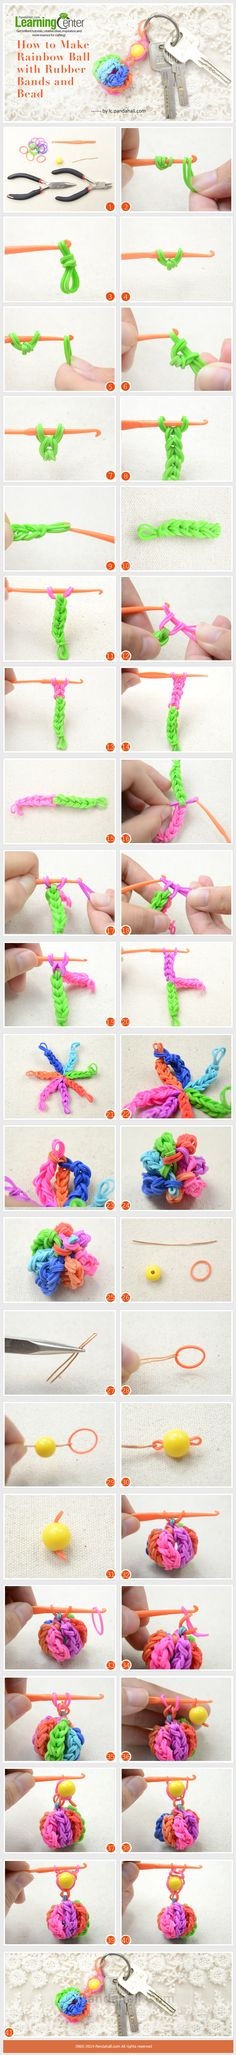 How to Make Rainbow Ball with Rubber Bands and Bead … Rainbow Loom Tutorials, Rainbow Loom Patterns, Rainbow Loom Creations, Rainbow Loom Bands, Rainbow Loom Charms, Rainbow Loom Bracelets, Loom Band Bracelets, Rubber Band Bracelet, Diy Bracelet